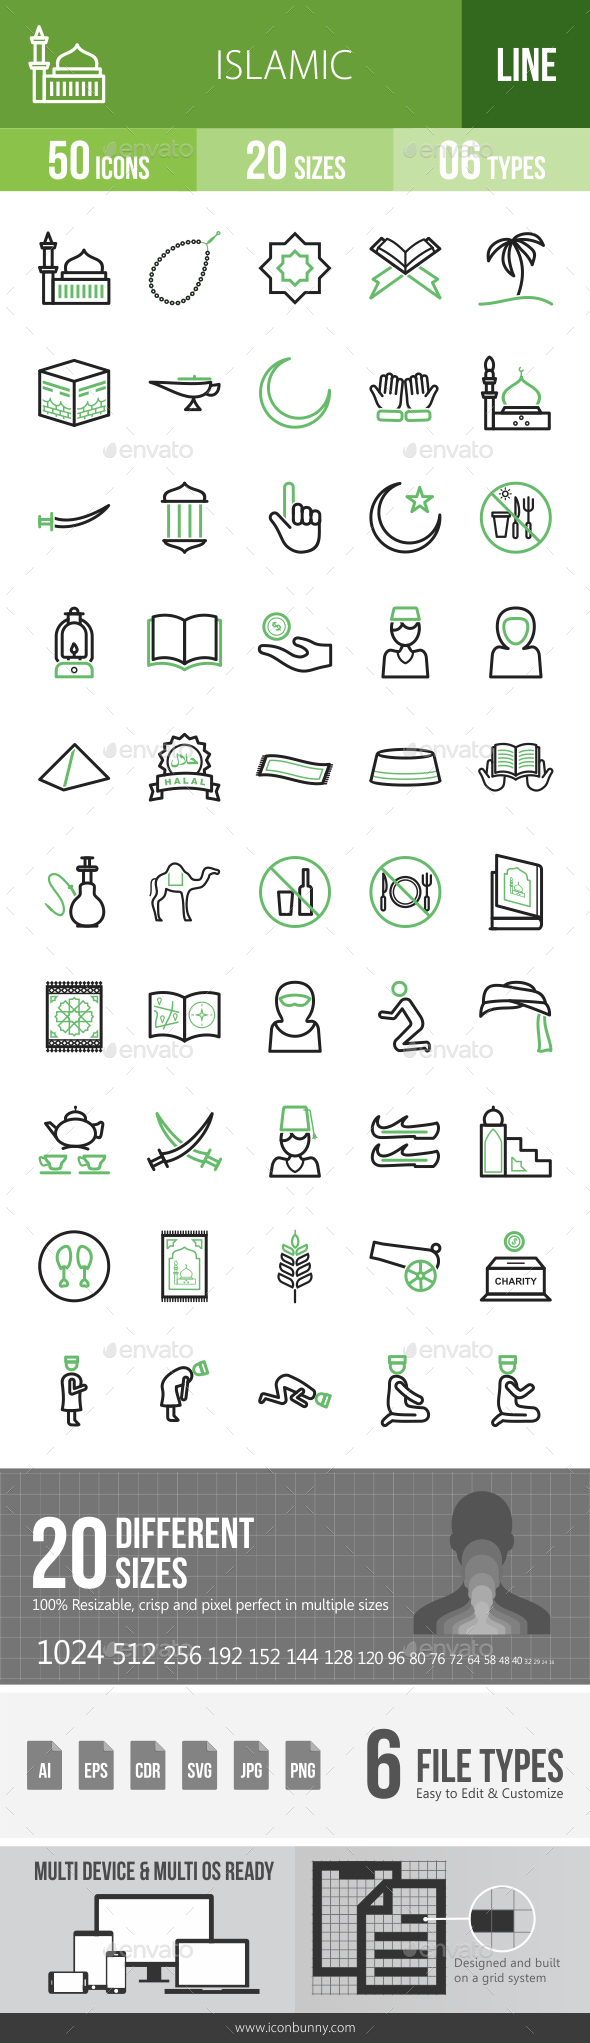 Islamic Line Green & Black Icons - Icons